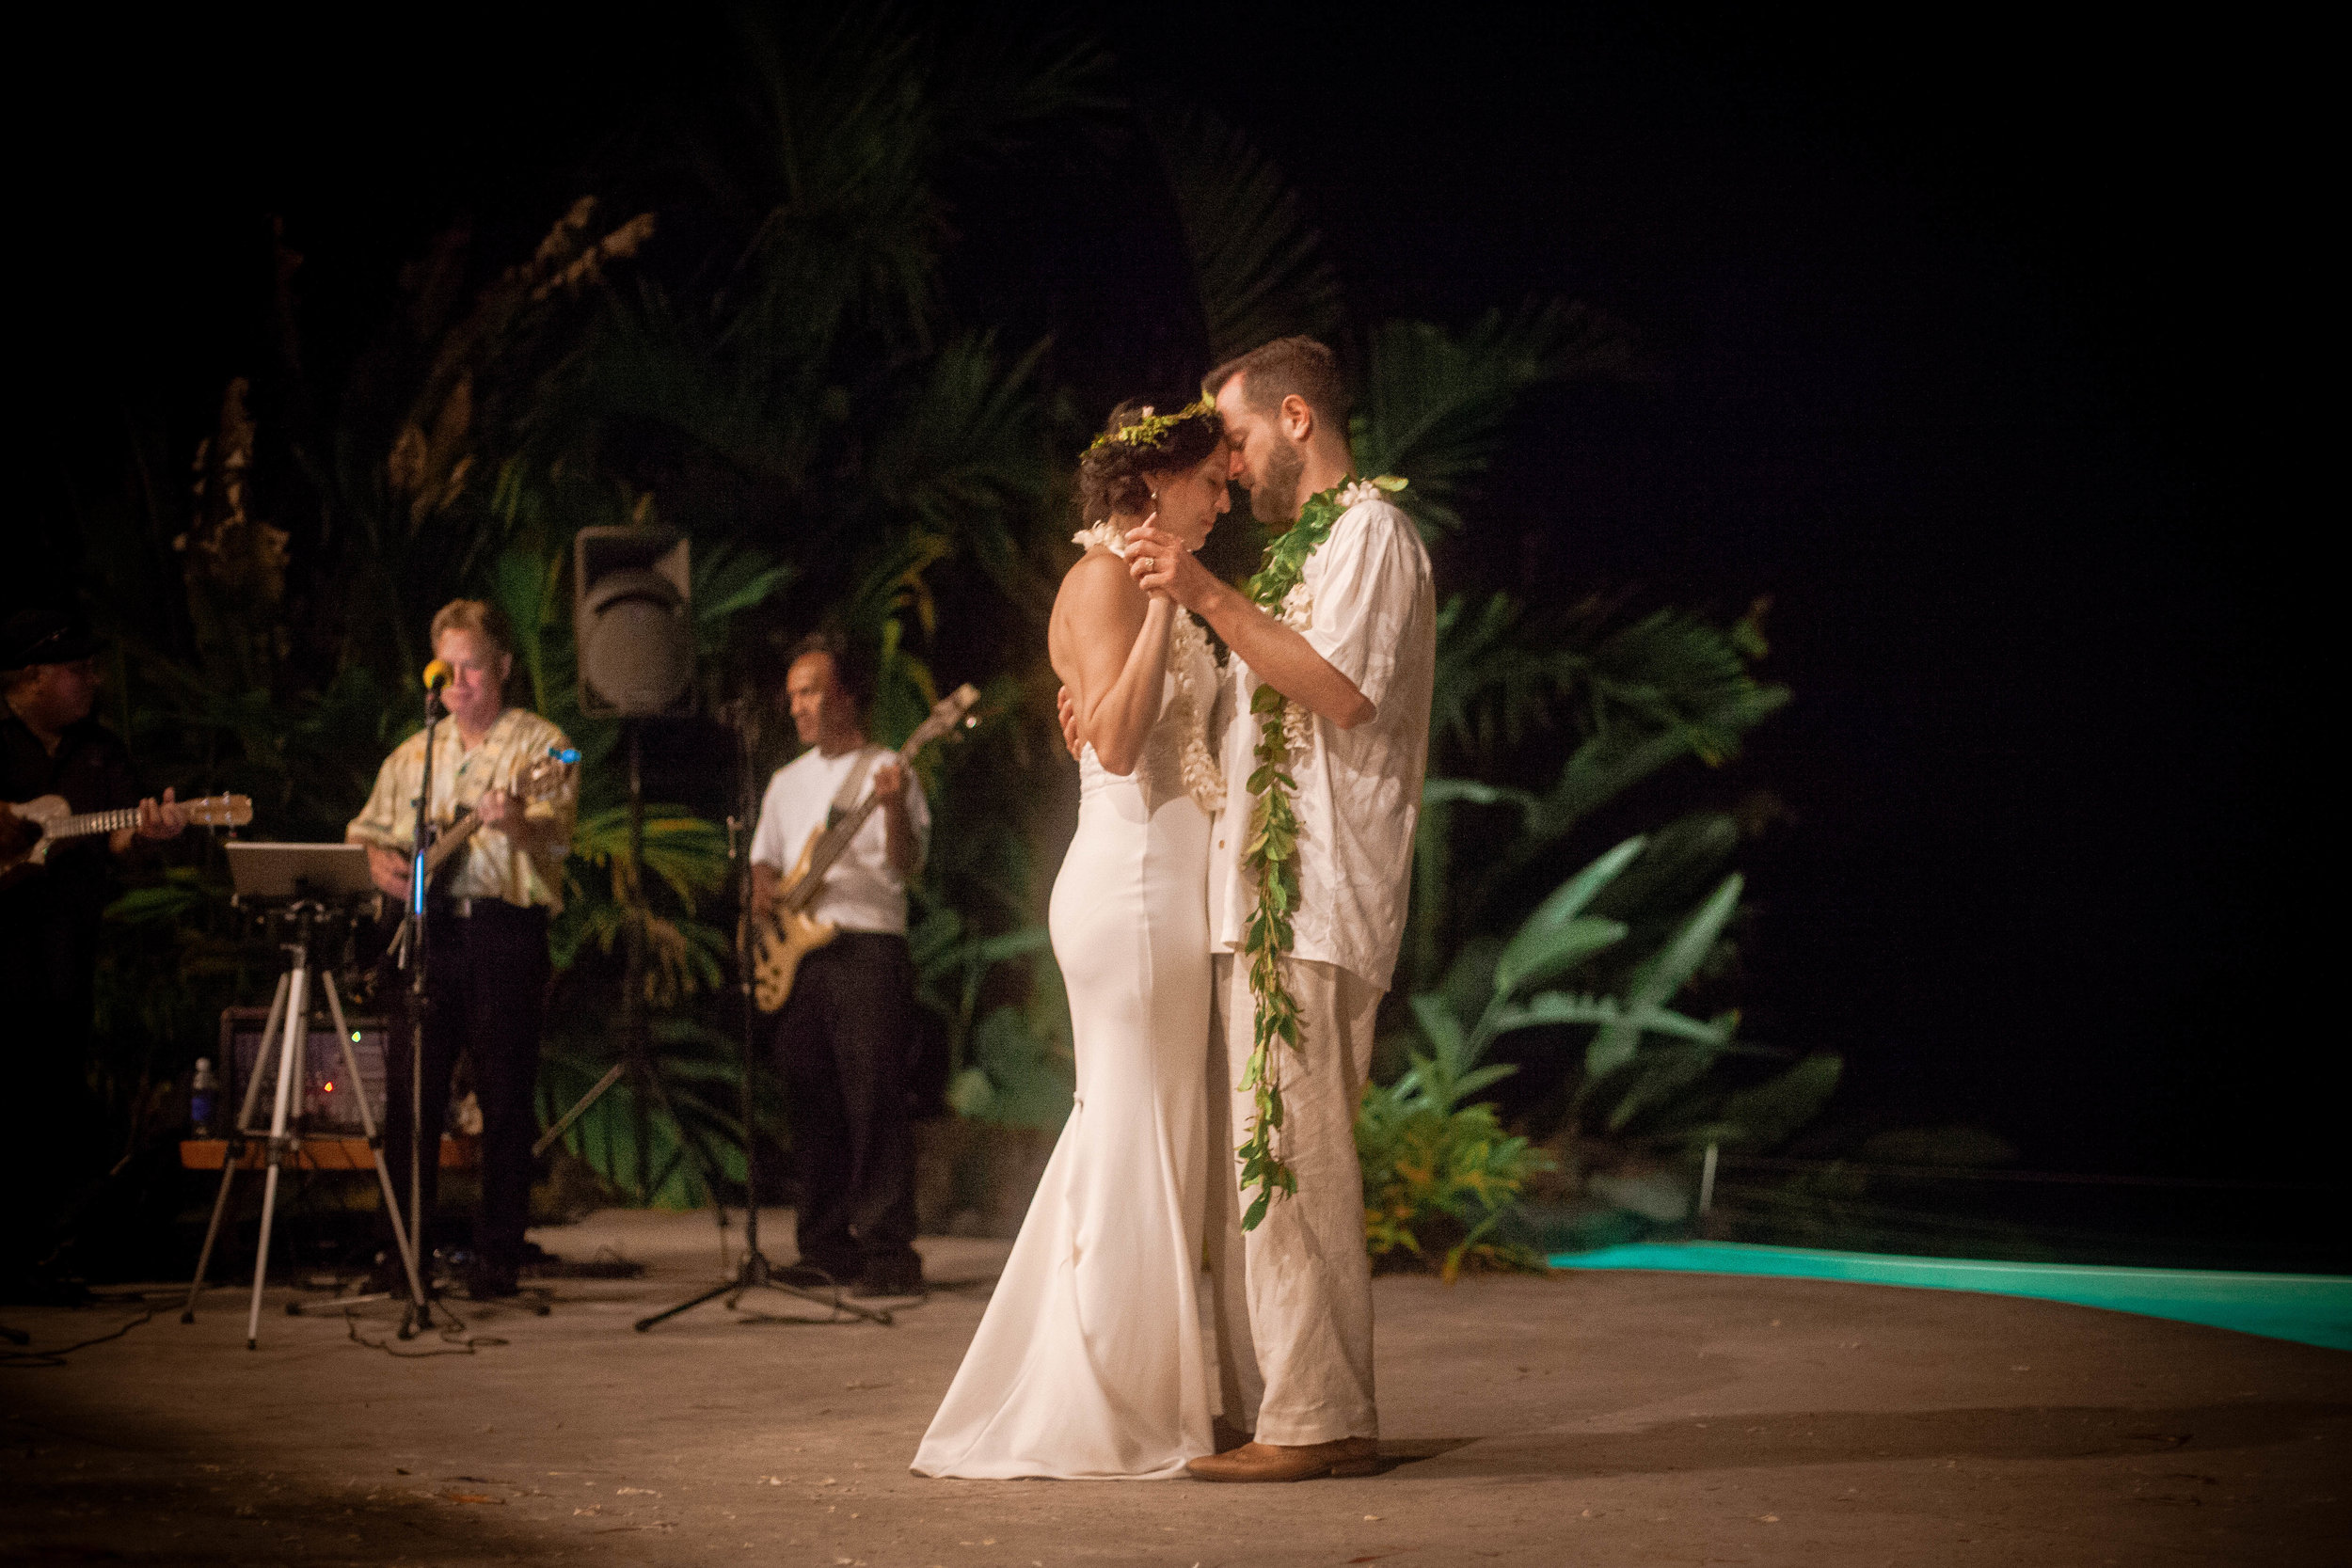 big island hawaii holualoa estate wedding 20160908214457-1kb.jpg